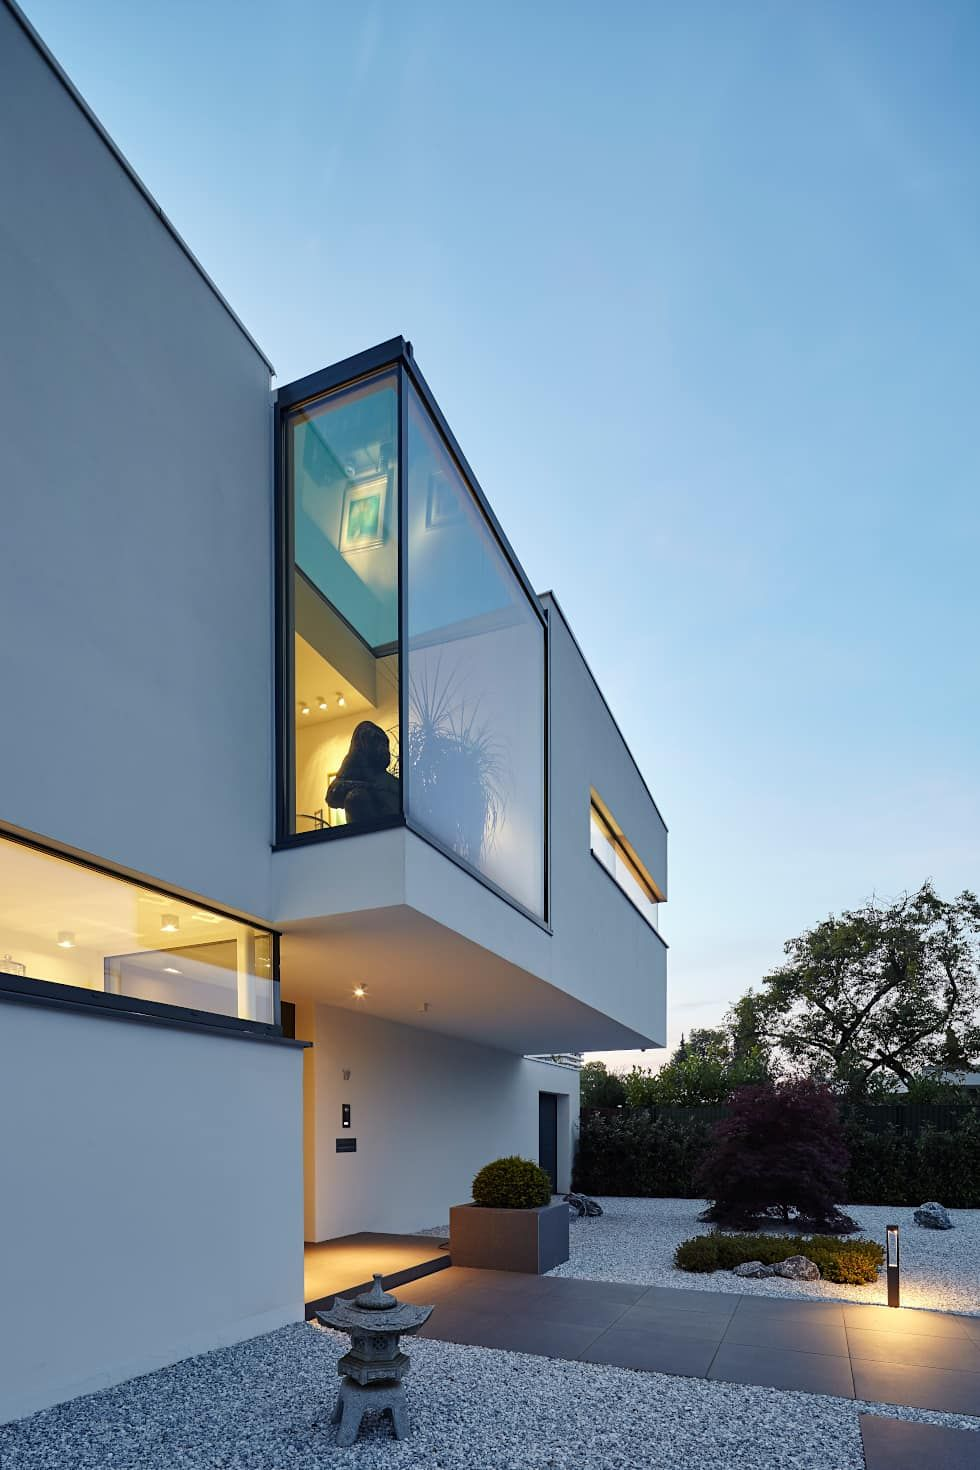 Villa s h user von lioba schneider architectural for Bauhausstil innenarchitektur